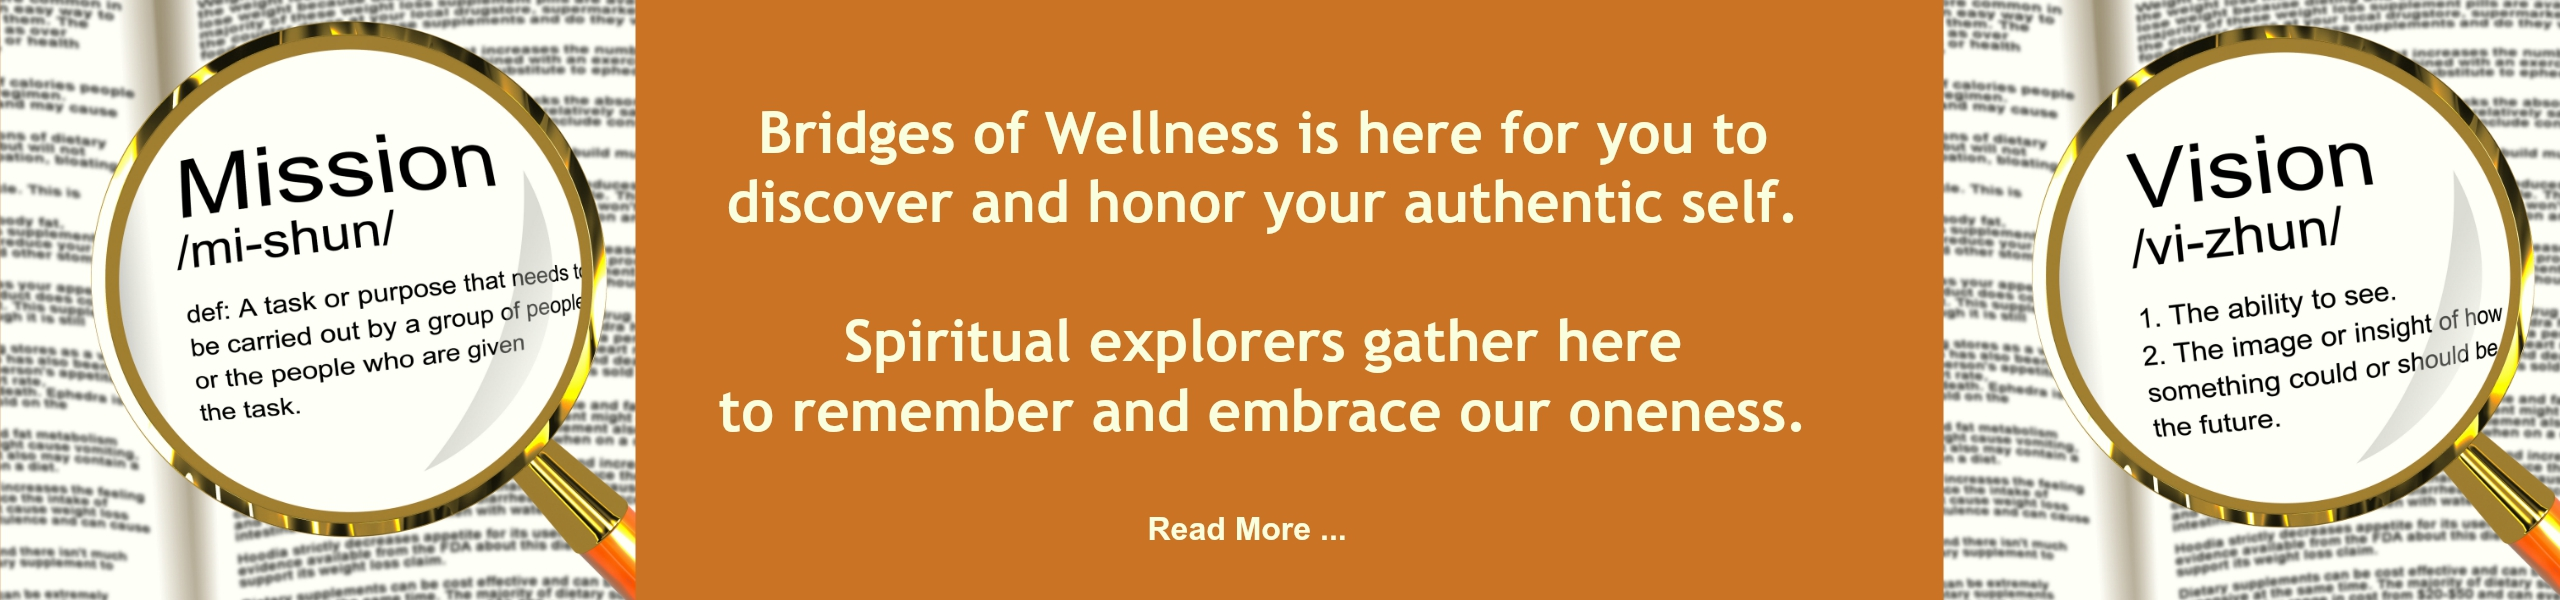 Bridges of Wellness Our Mission